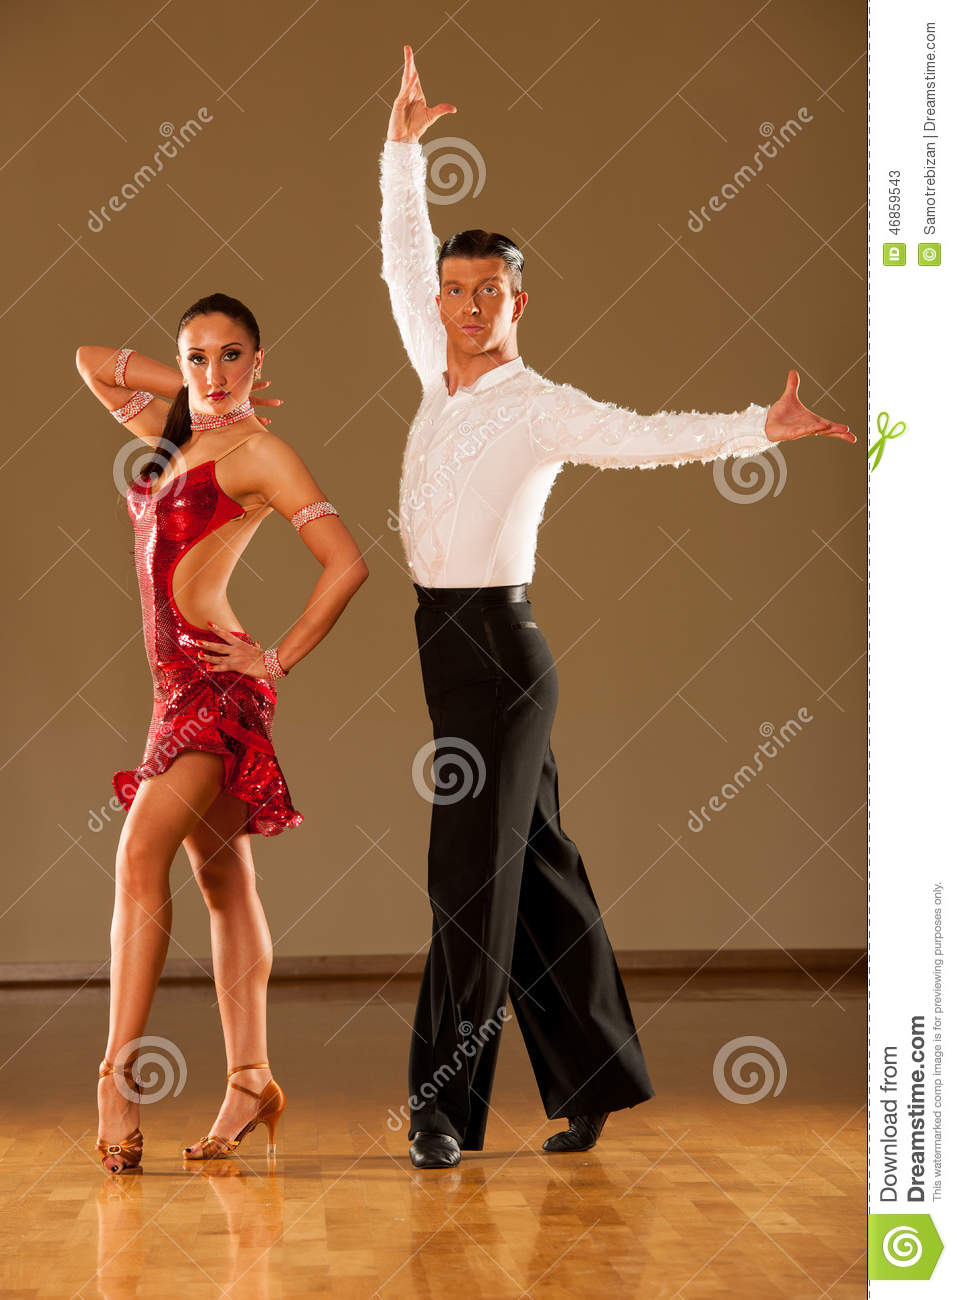 Latino Dance Couple In Action - Dancing Wild Samba Stock ...